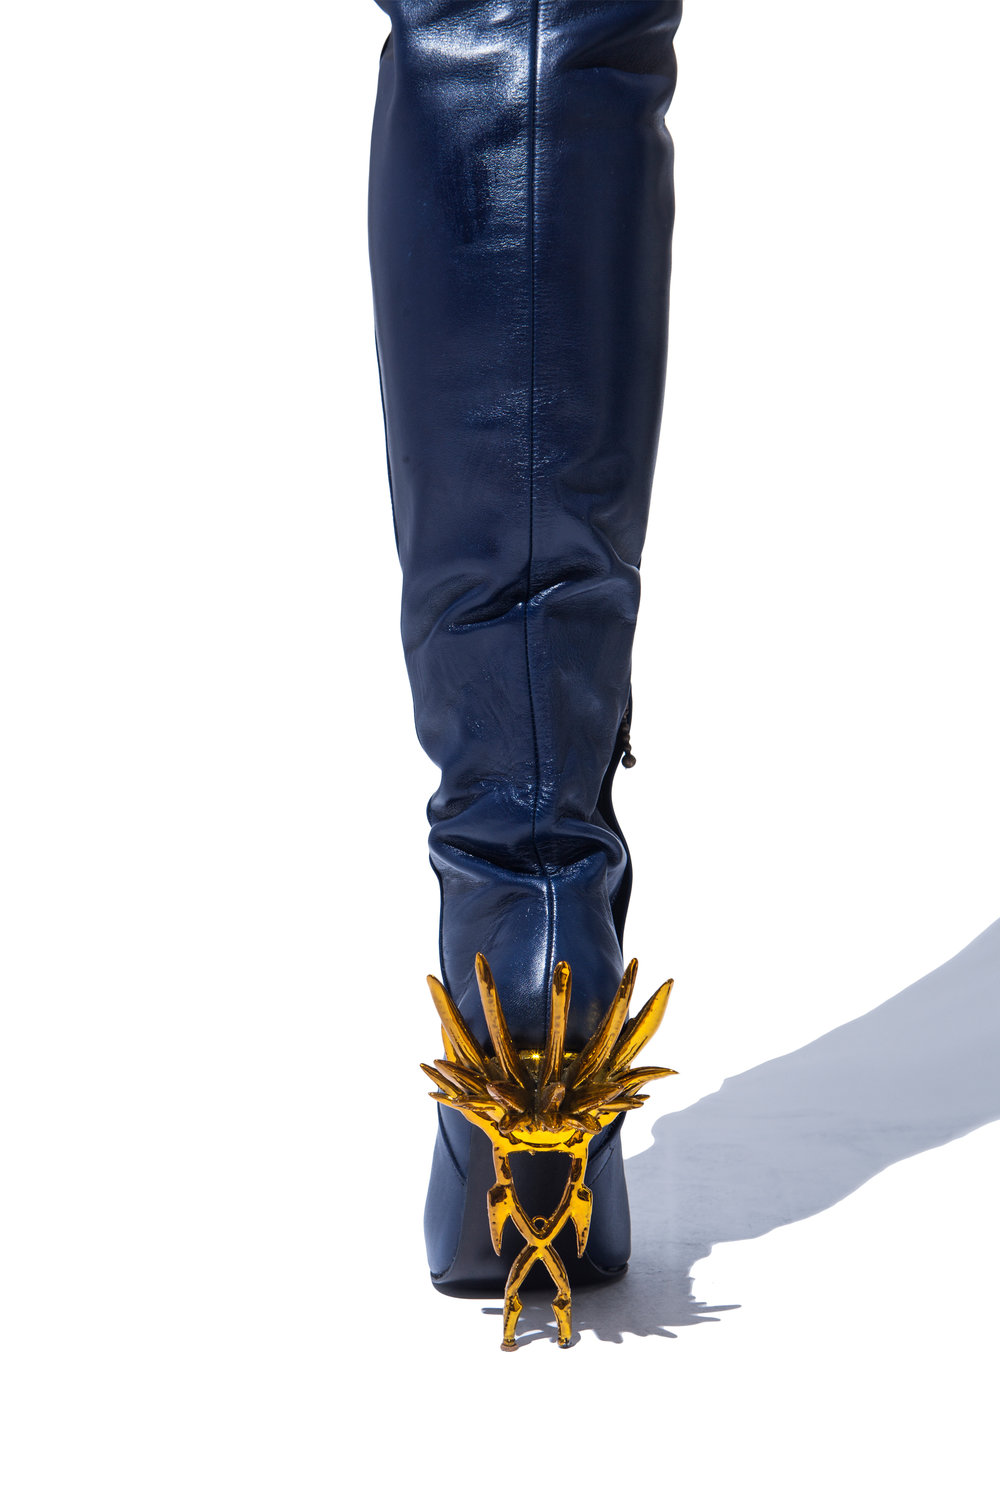 STILETTO AS WEAPON | 3D PRINTED THIGH HIGH BOOTS